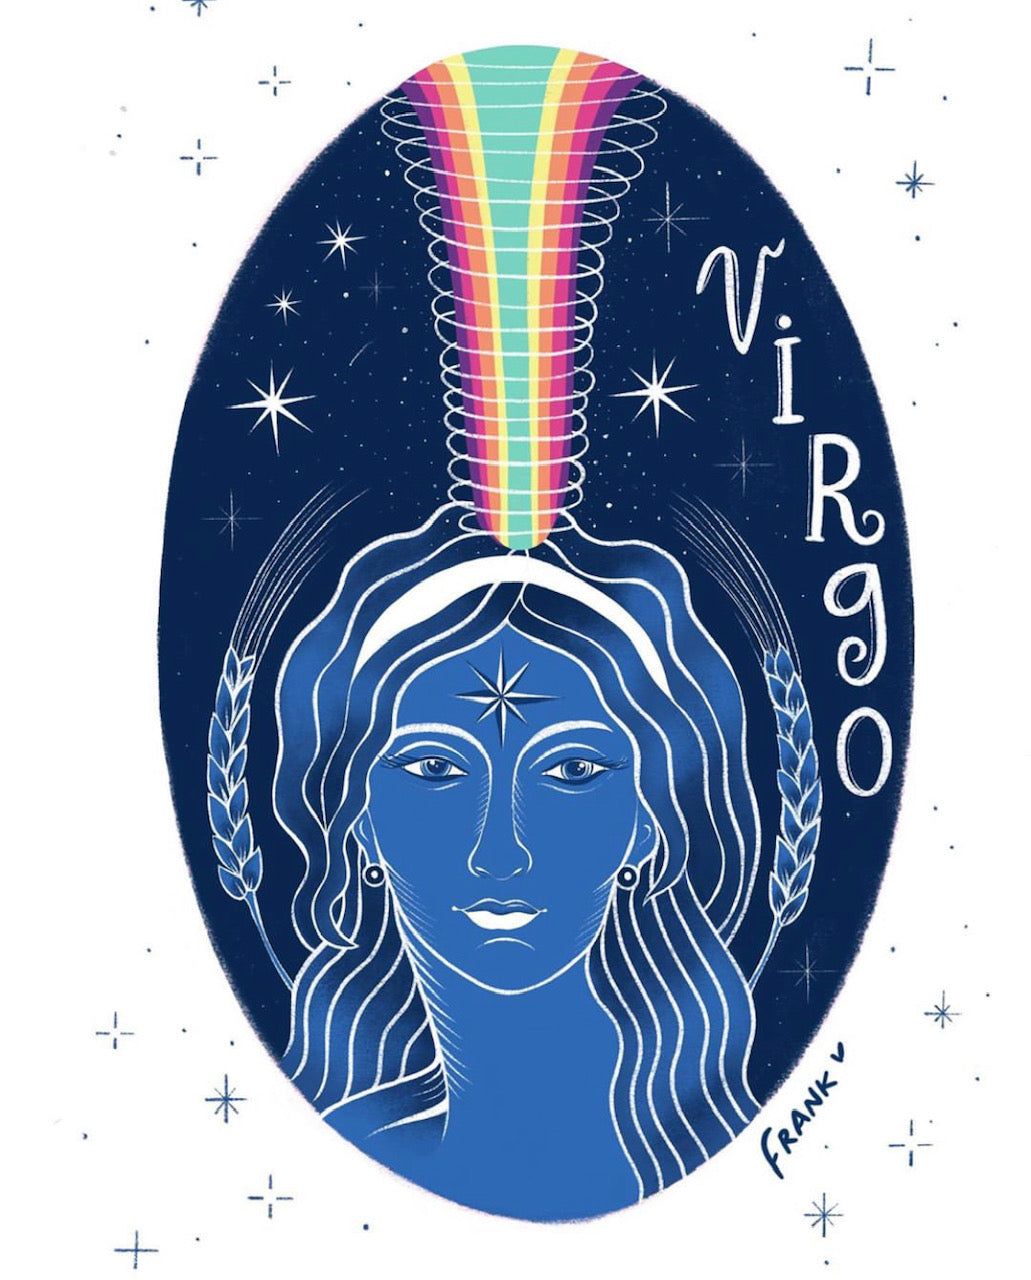 Virgo Season, Welcome!